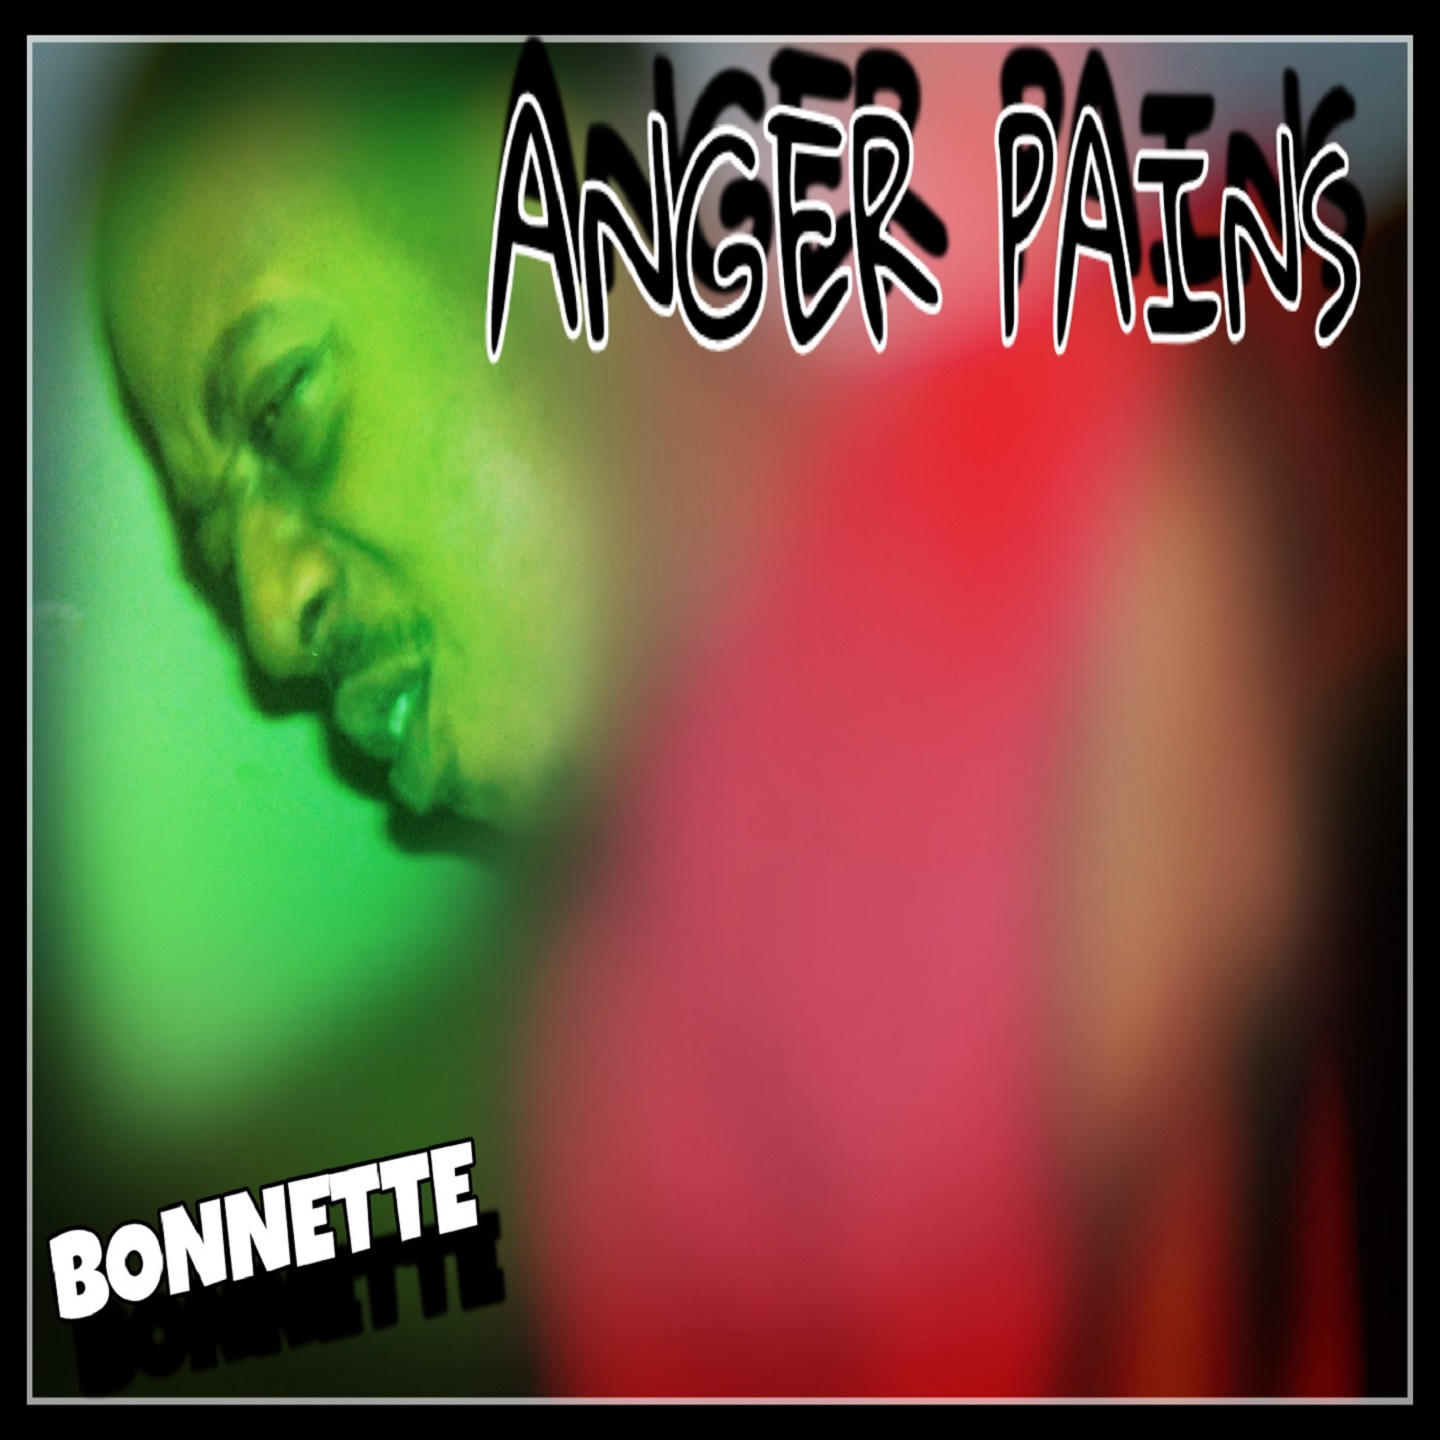 ANGER PAINS